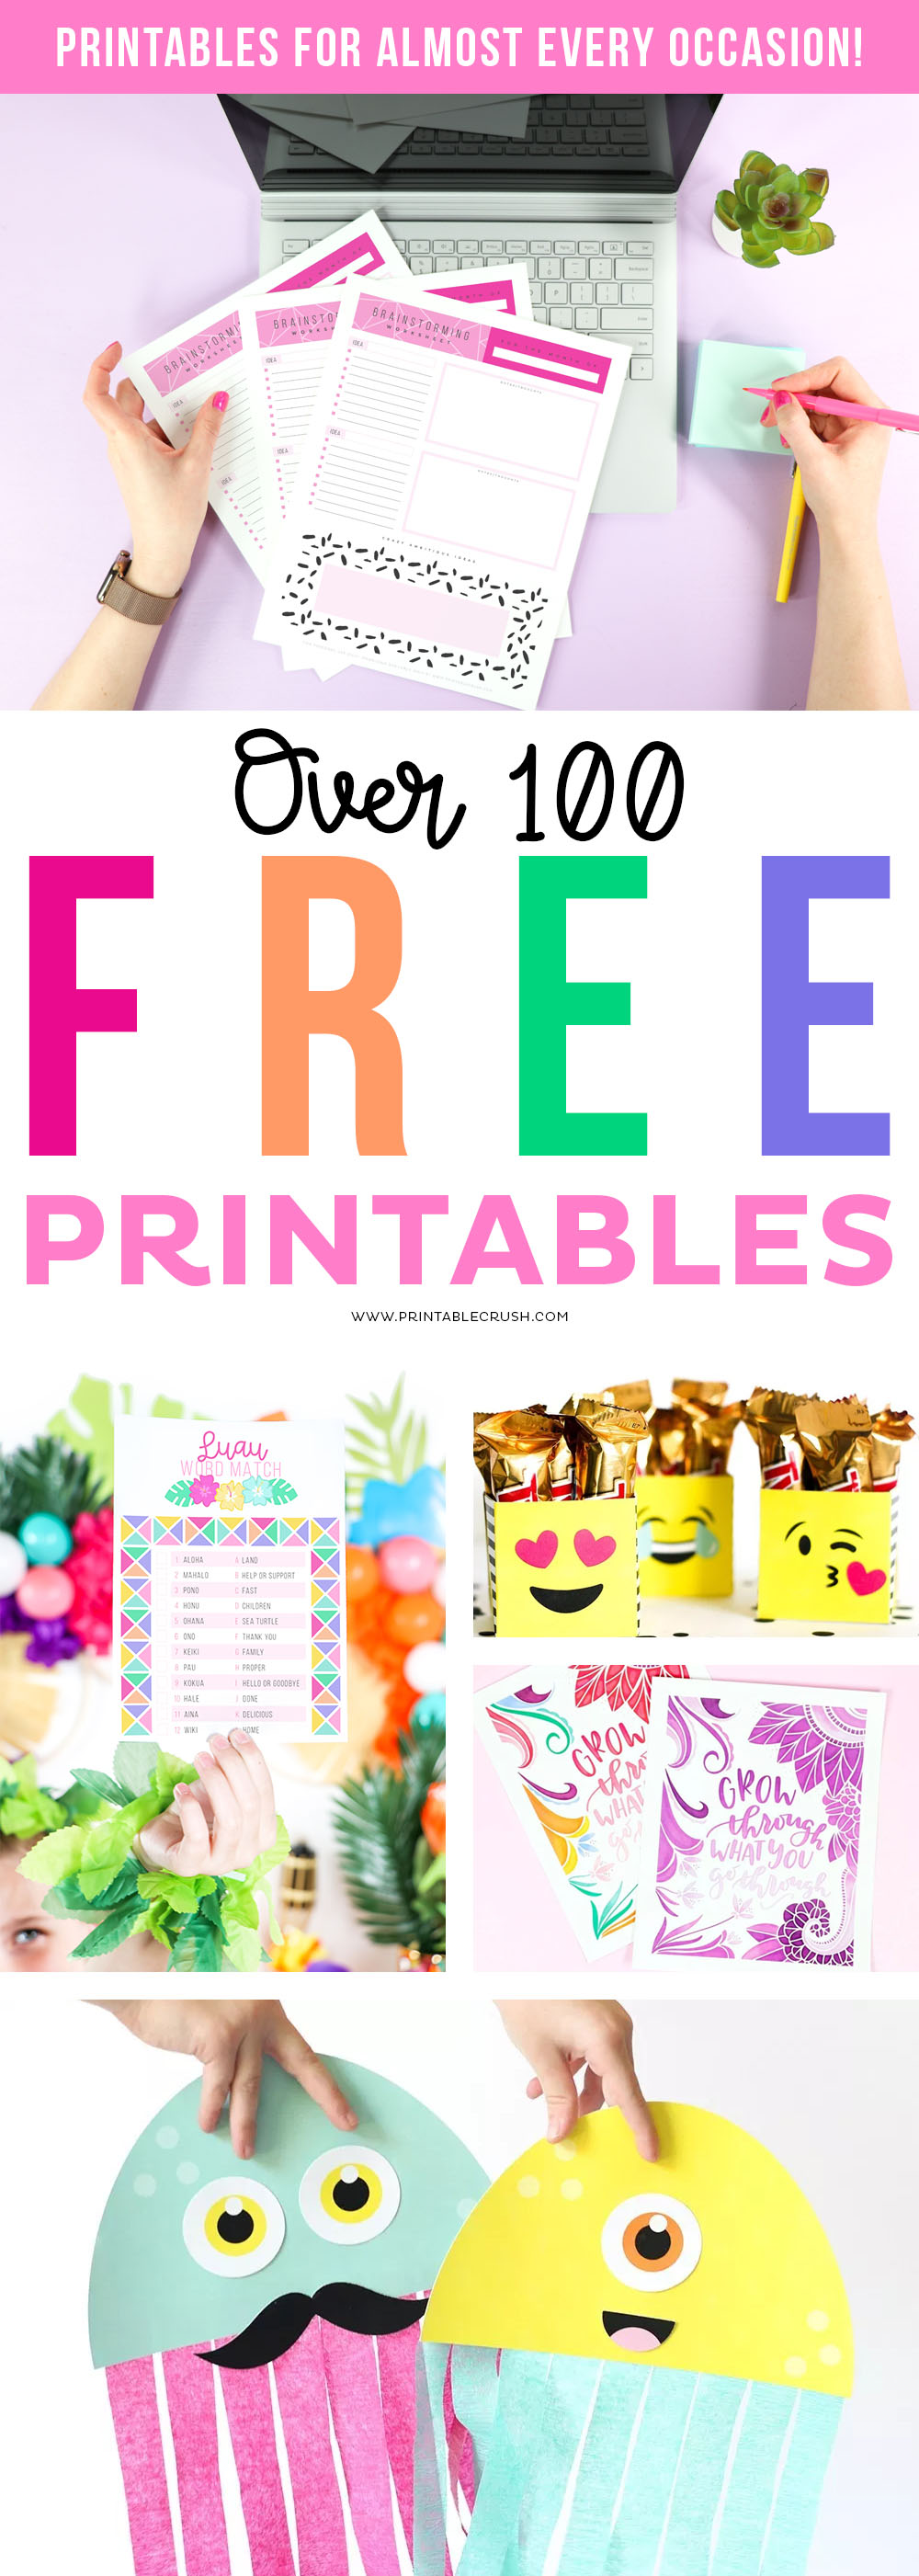 Looking for FREE Printables, but having a problem navigating through Pinterest? You'll love this list of over 100 printables for almost EVERY Occasion! #freeprintables #freeholidayprintables #printables #printablecrush #printabledesigns #holidayprintables #freeprintable #printableactivities #partyprintables